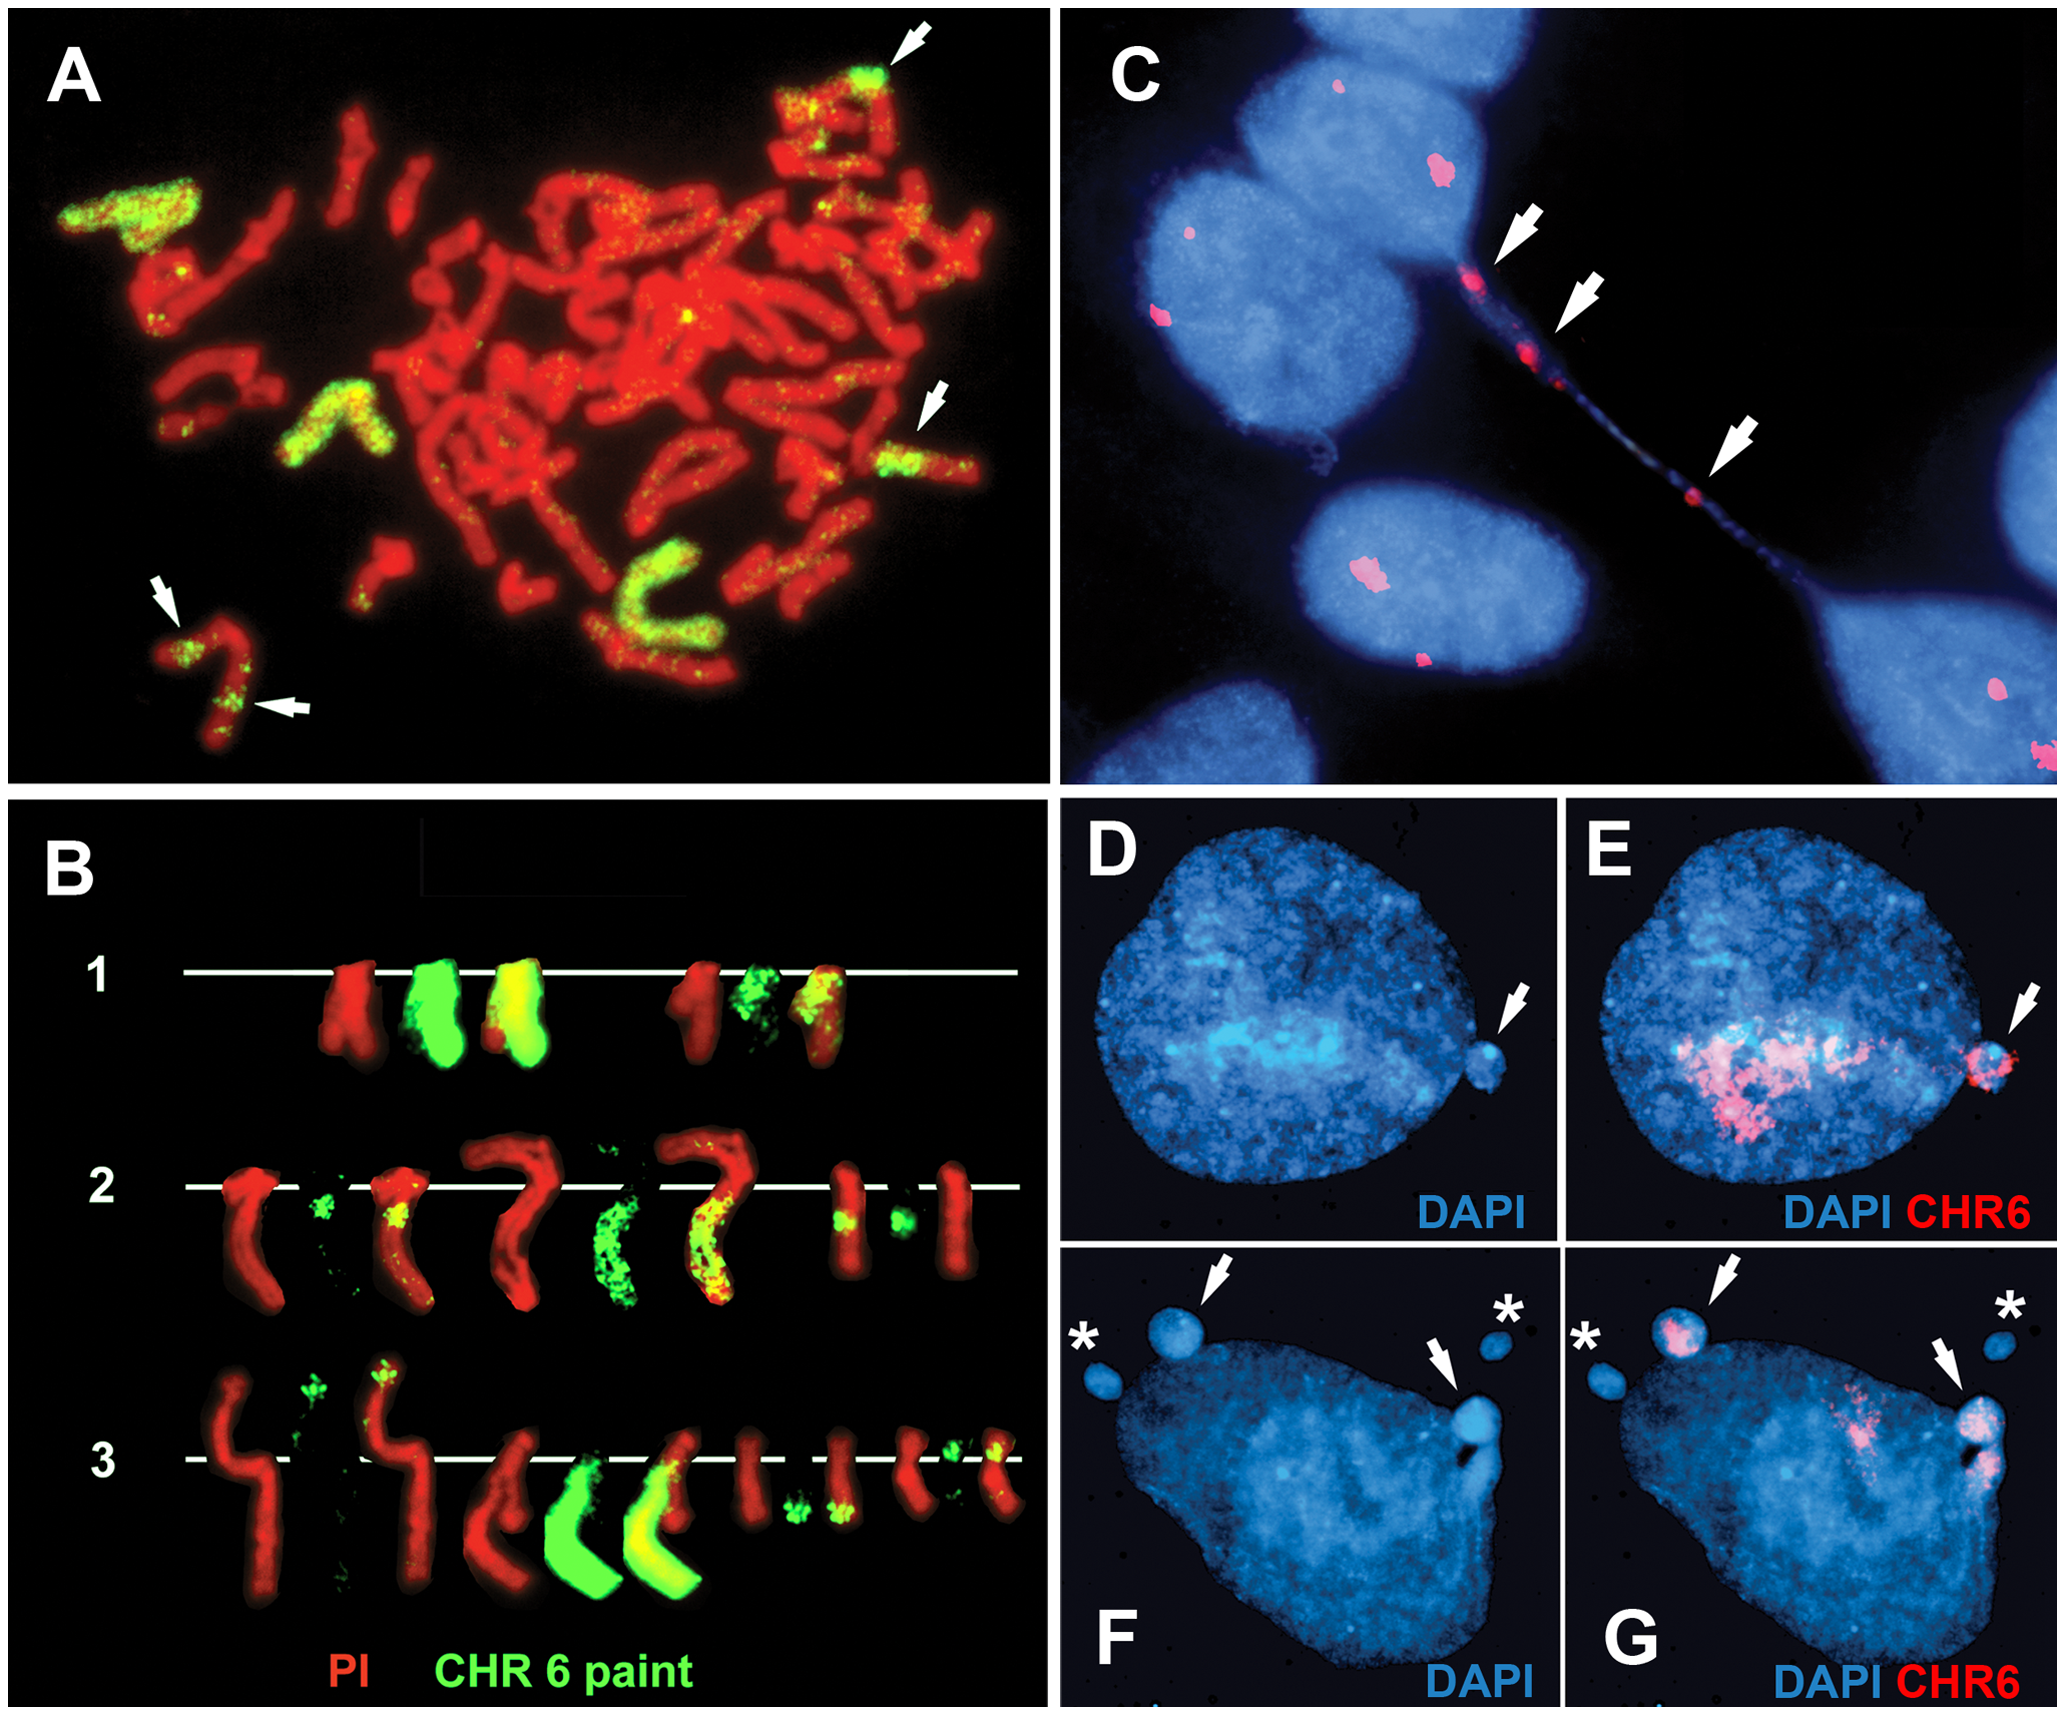 Disruption of <i>ASAR6</i> leads to instability of chromosome 6.